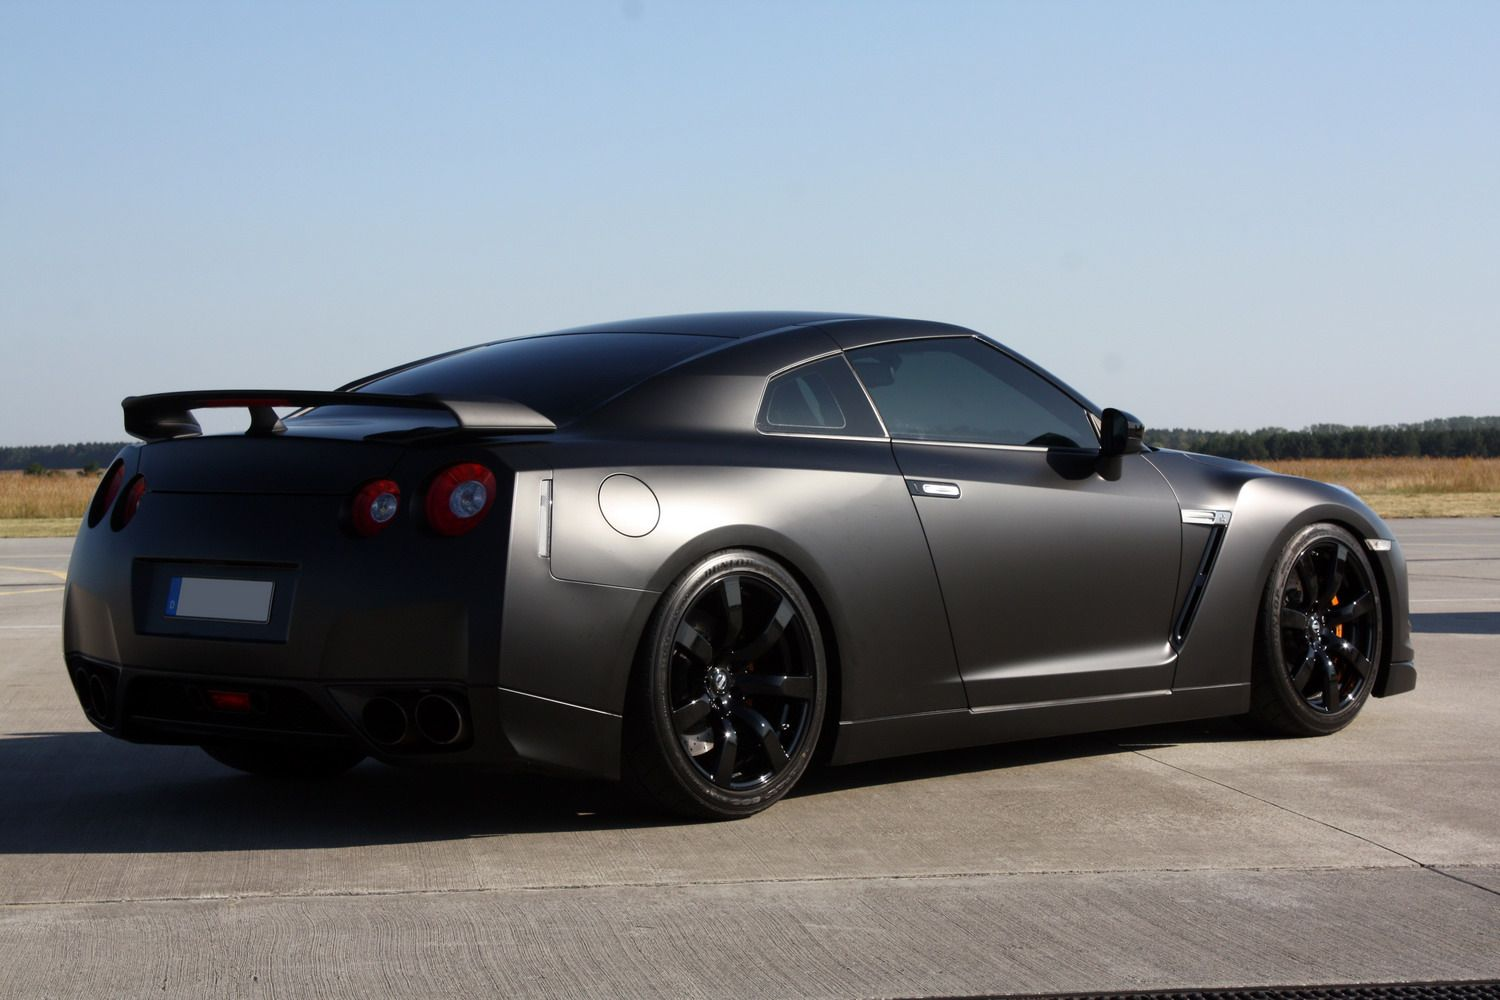 my boyfriends 39 choice car nissian gt r he prefers white with blacked out features i like the. Black Bedroom Furniture Sets. Home Design Ideas